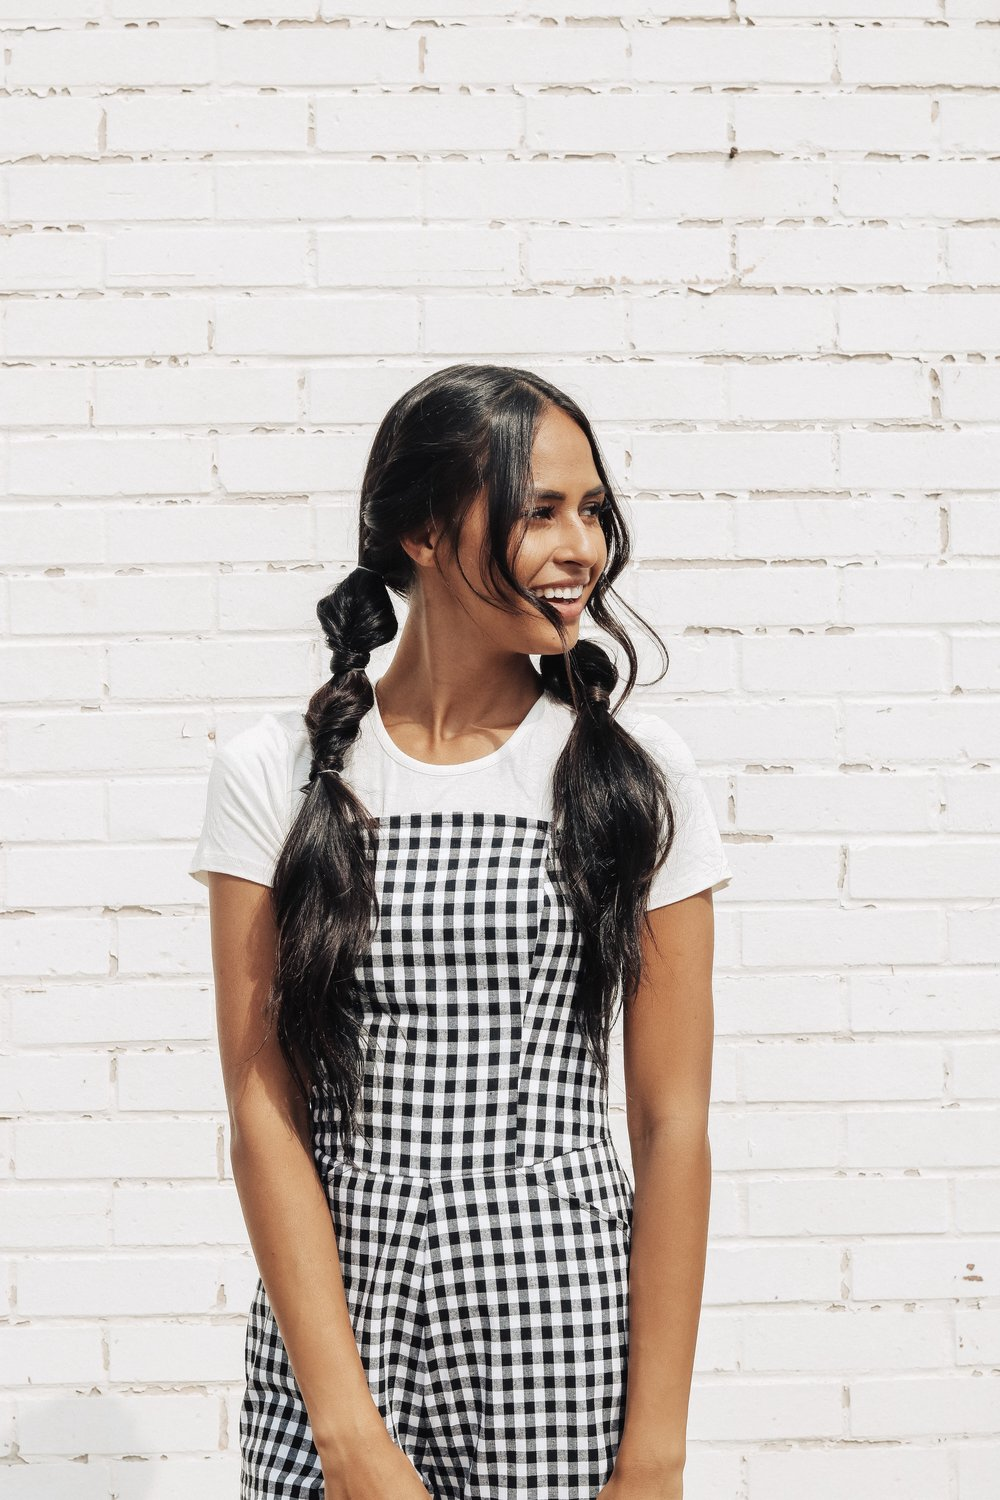 Pull-Through Pigtails - This is such a fun style for days when you want something flirty and easy. Looks cute with graphic tees and jumpers!